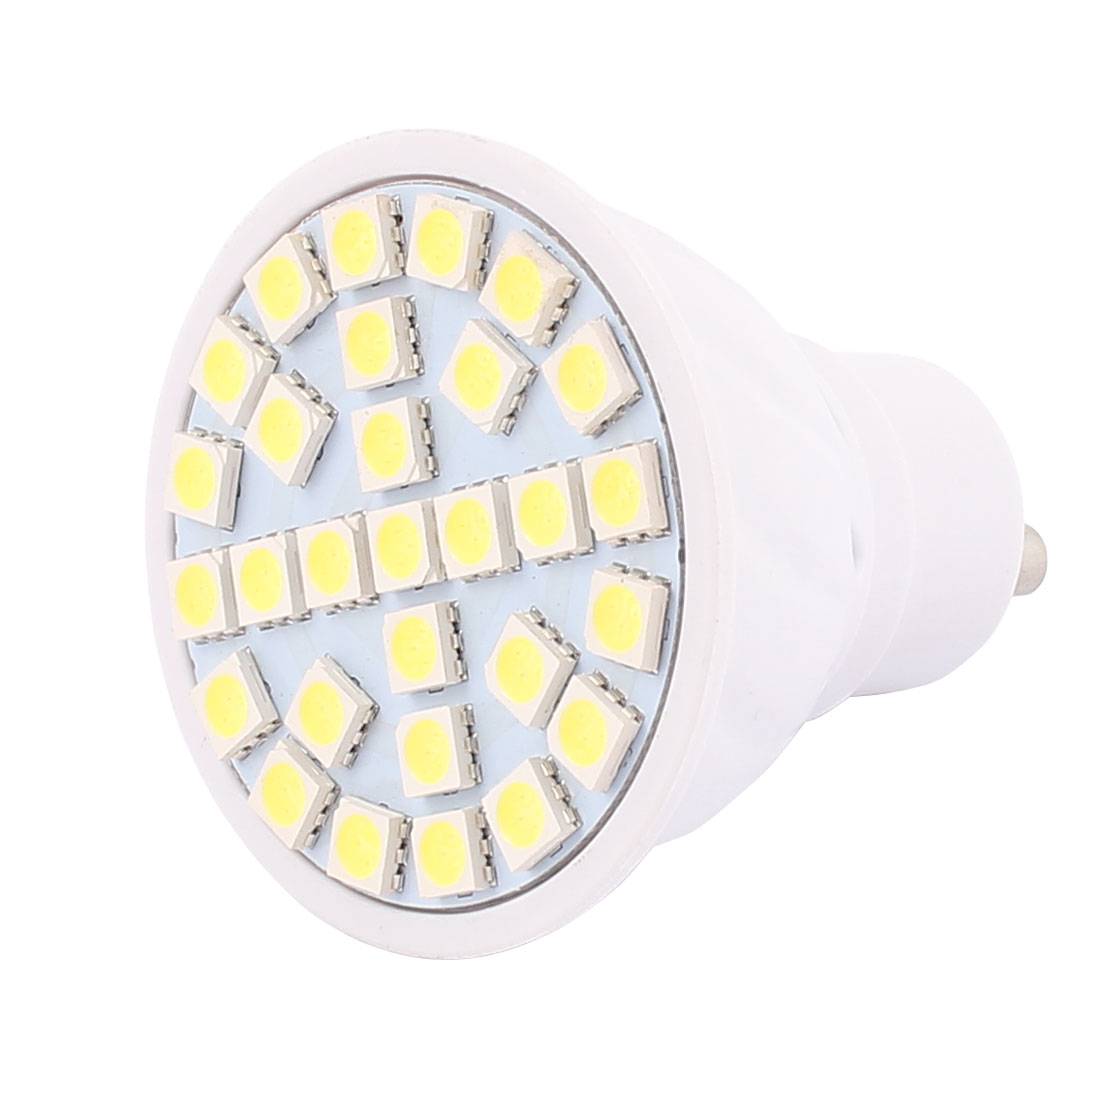 220V GU10 LED Light 5W 5050 SMD 29 LEDs Spotlight Down Lamp Bulb Energy Save Pure White